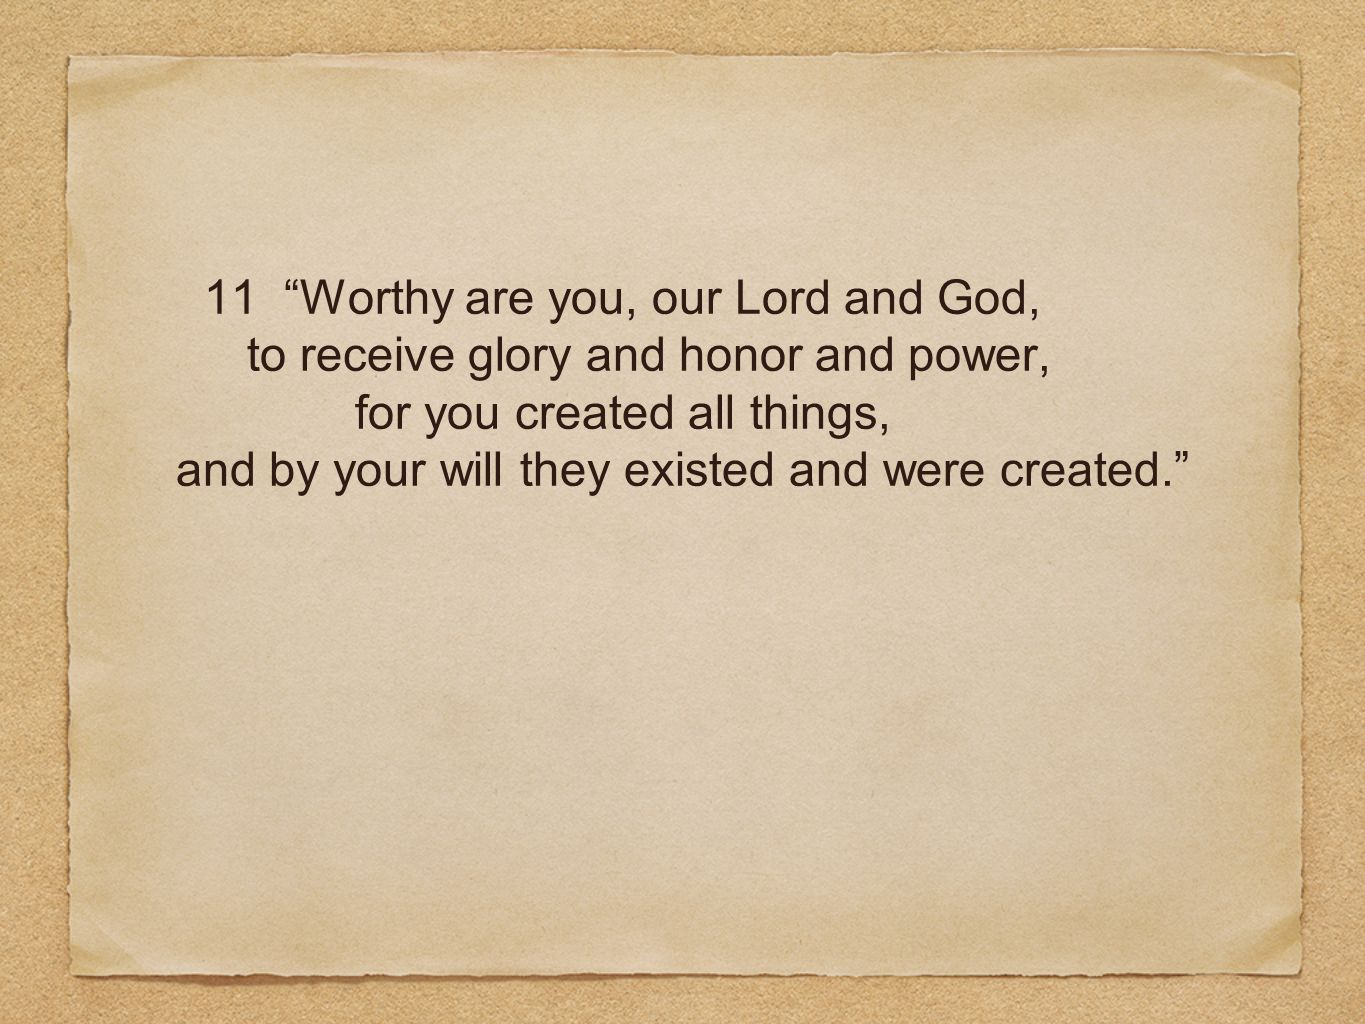 11 Worthy are you, our Lord and God, to receive glory and honor and power, for you created all things, and by your will they existed and were created.